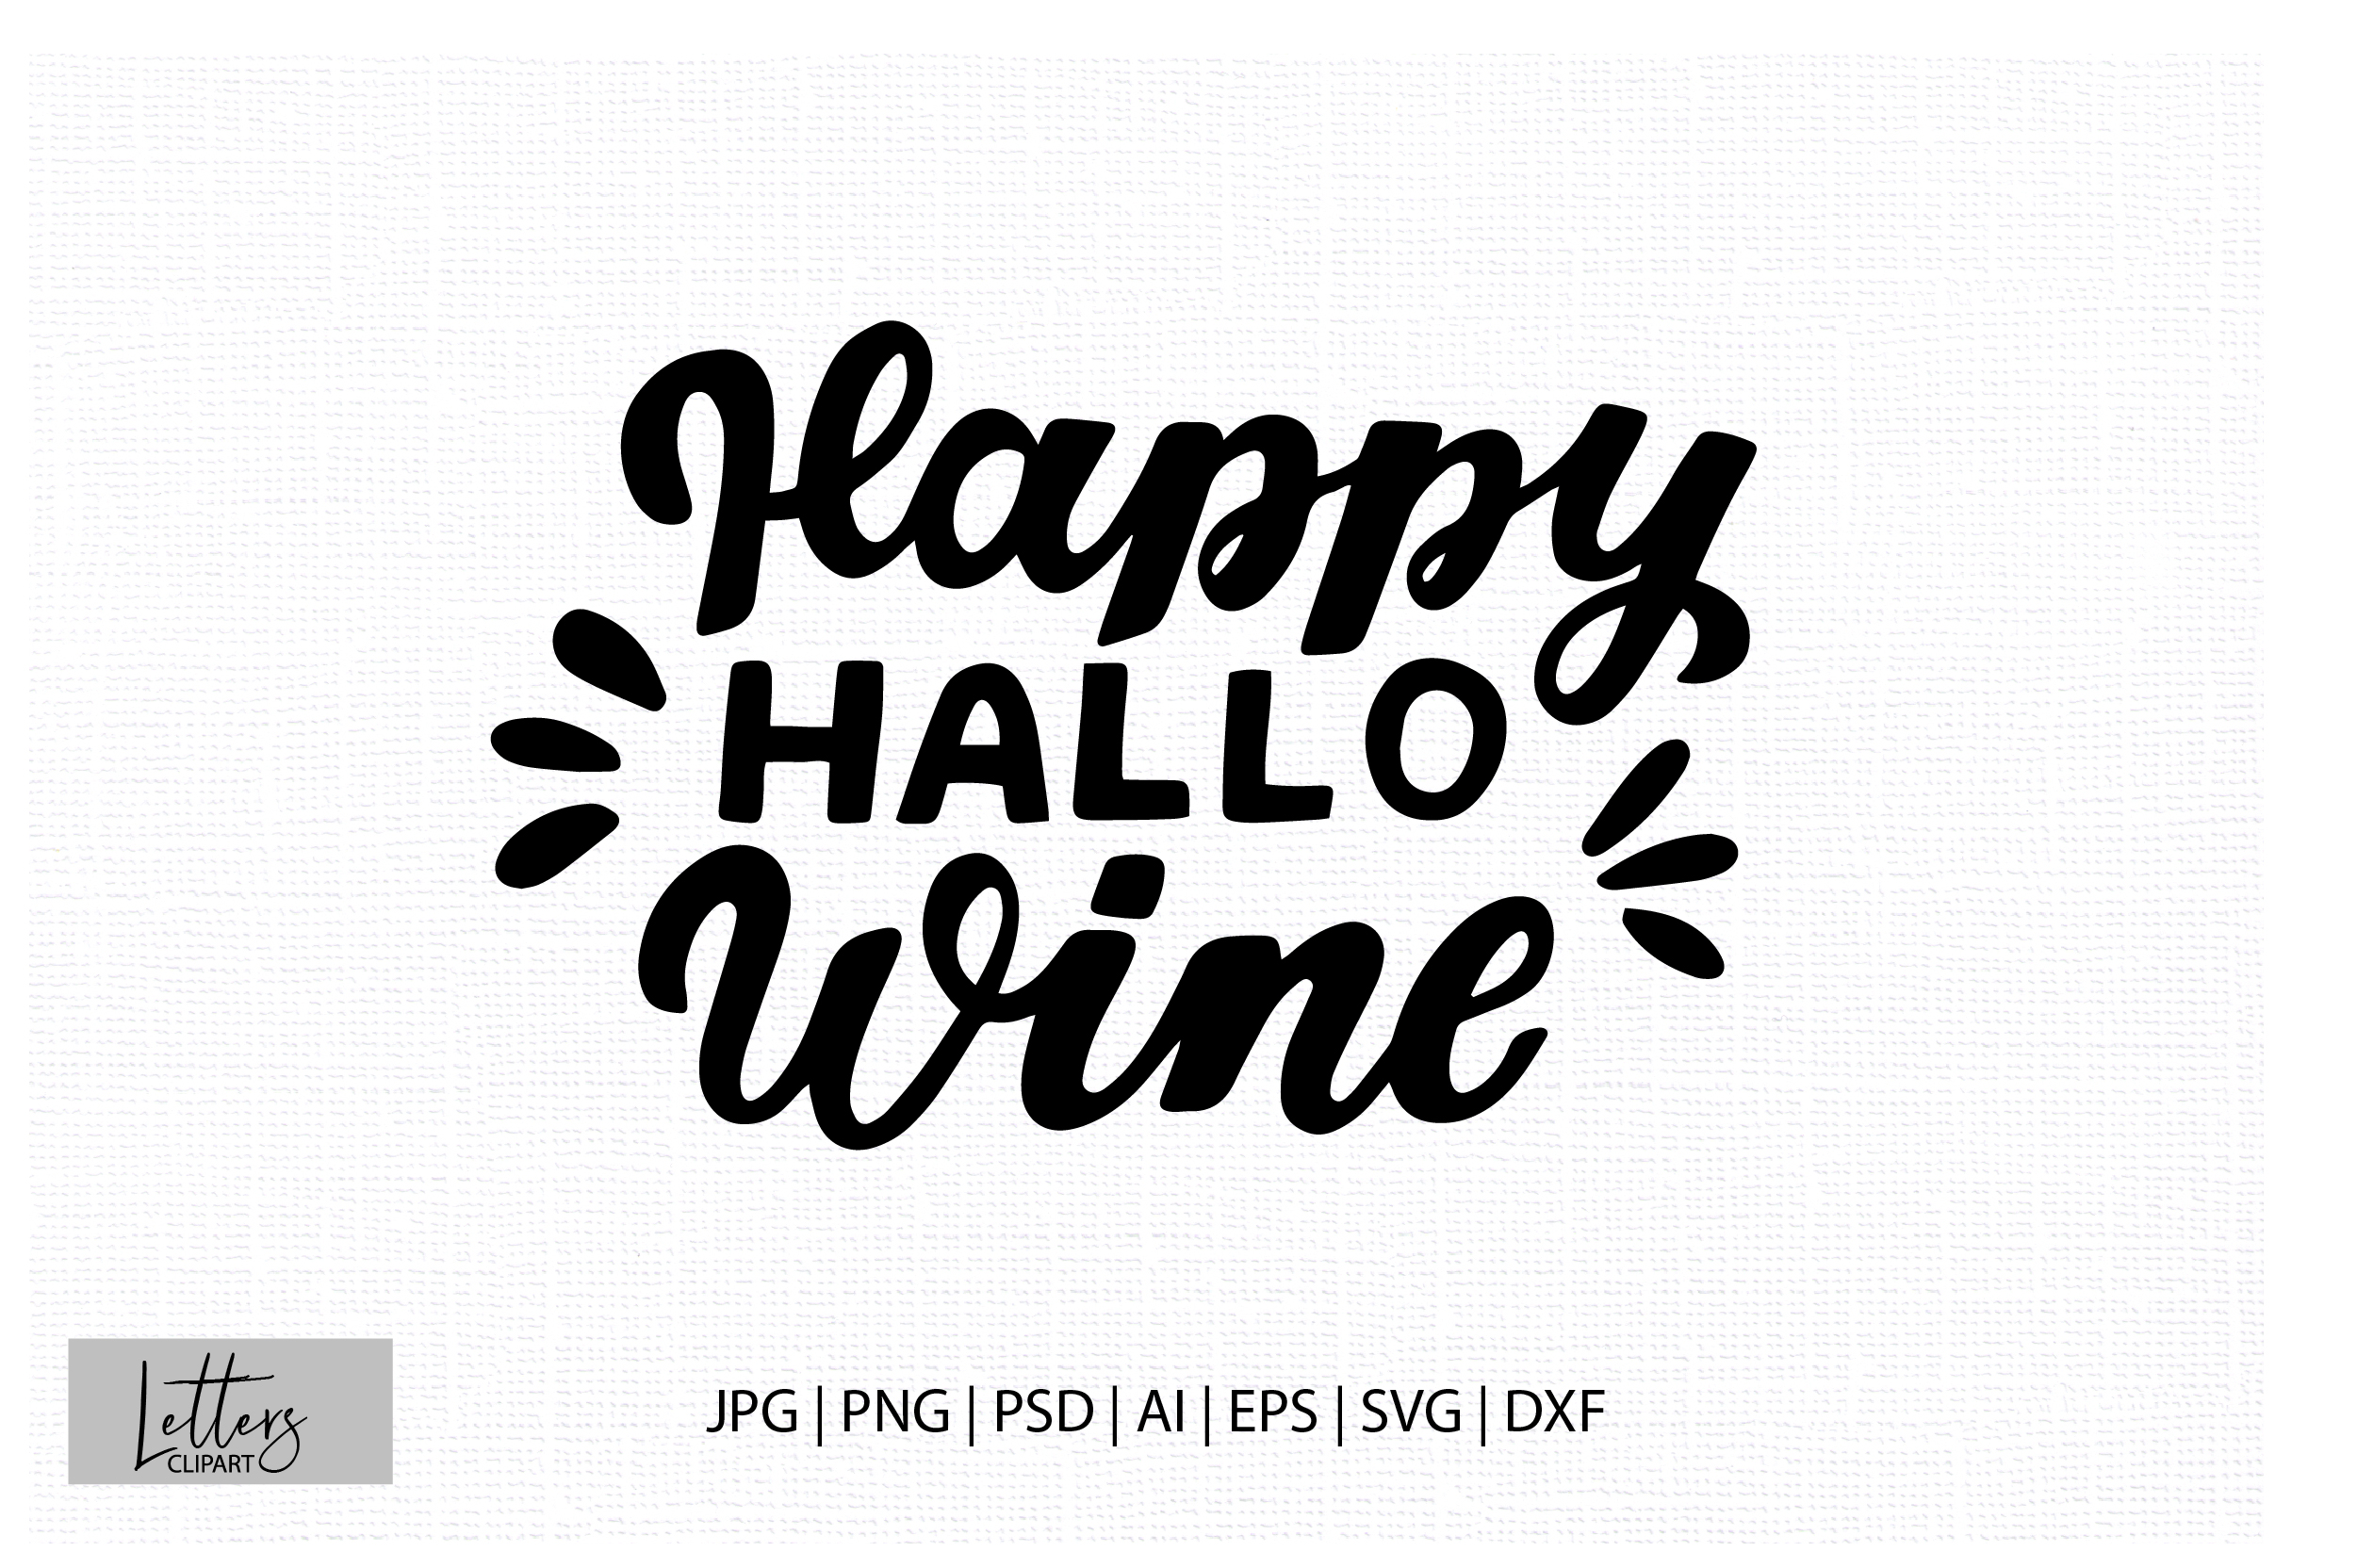 Halloween Wine Svg Free Free Svg Cut Files Create Your Diy Projects Using Your Cricut Explore Silhouette And More The Free Cut Files Include Svg Dxf Eps And Png Files